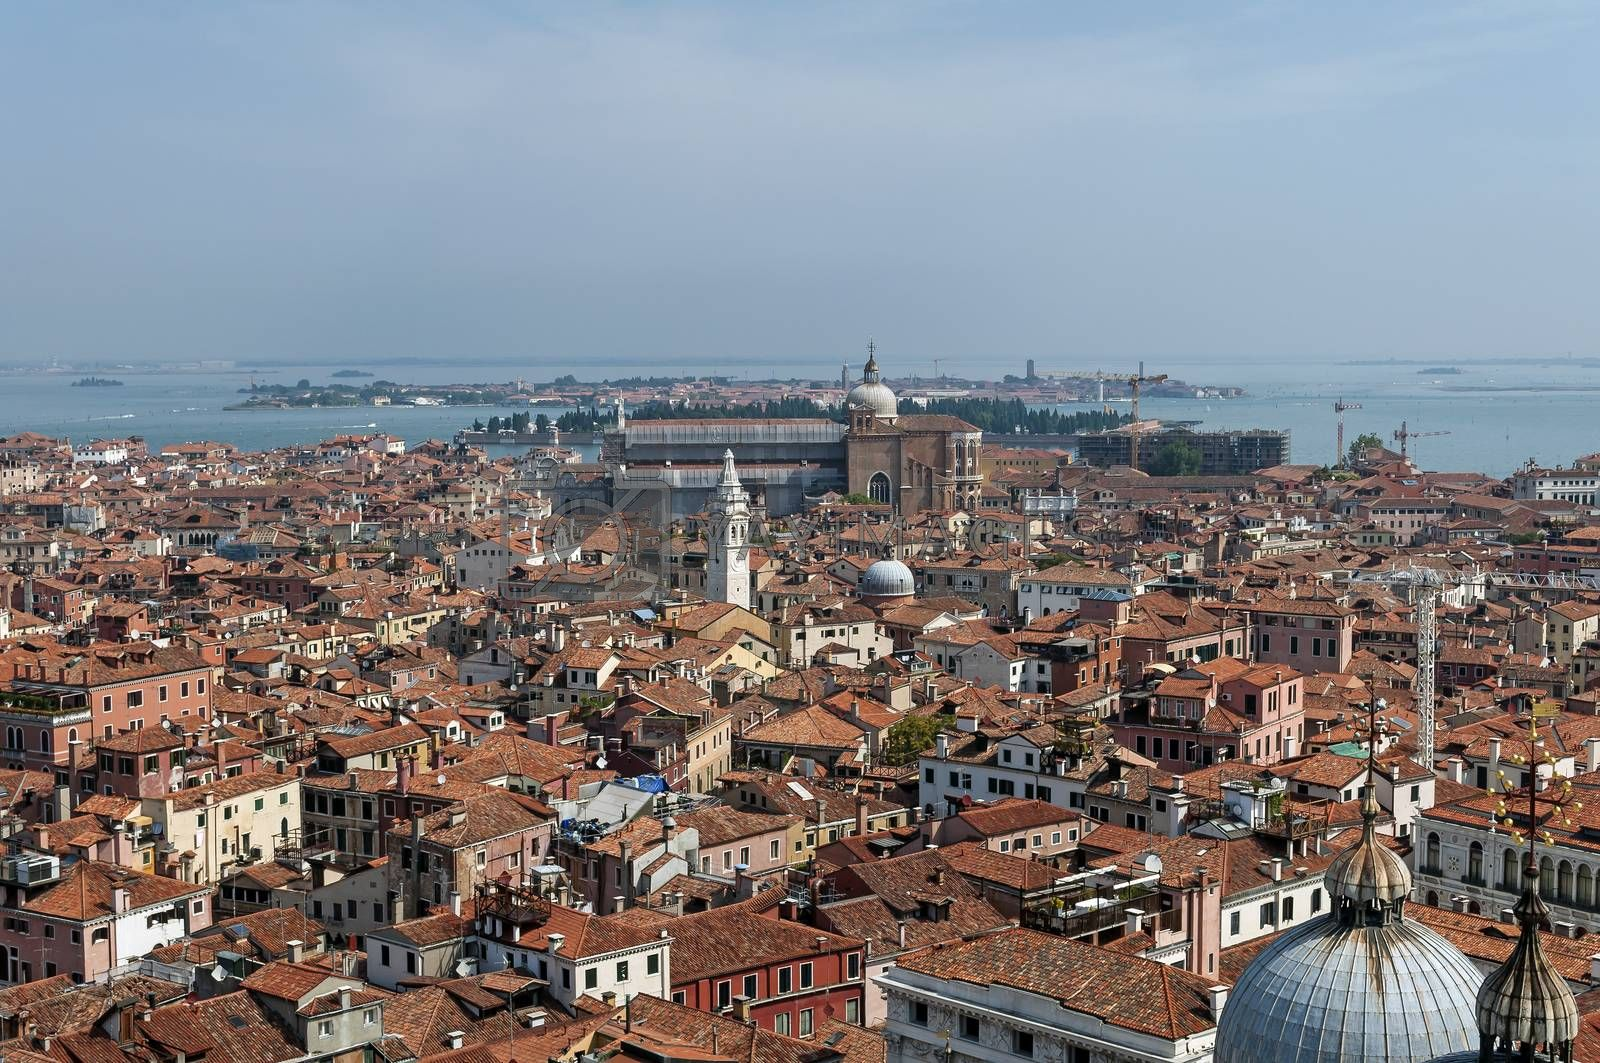 Royalty free image of Venice, Italy. by FER737NG